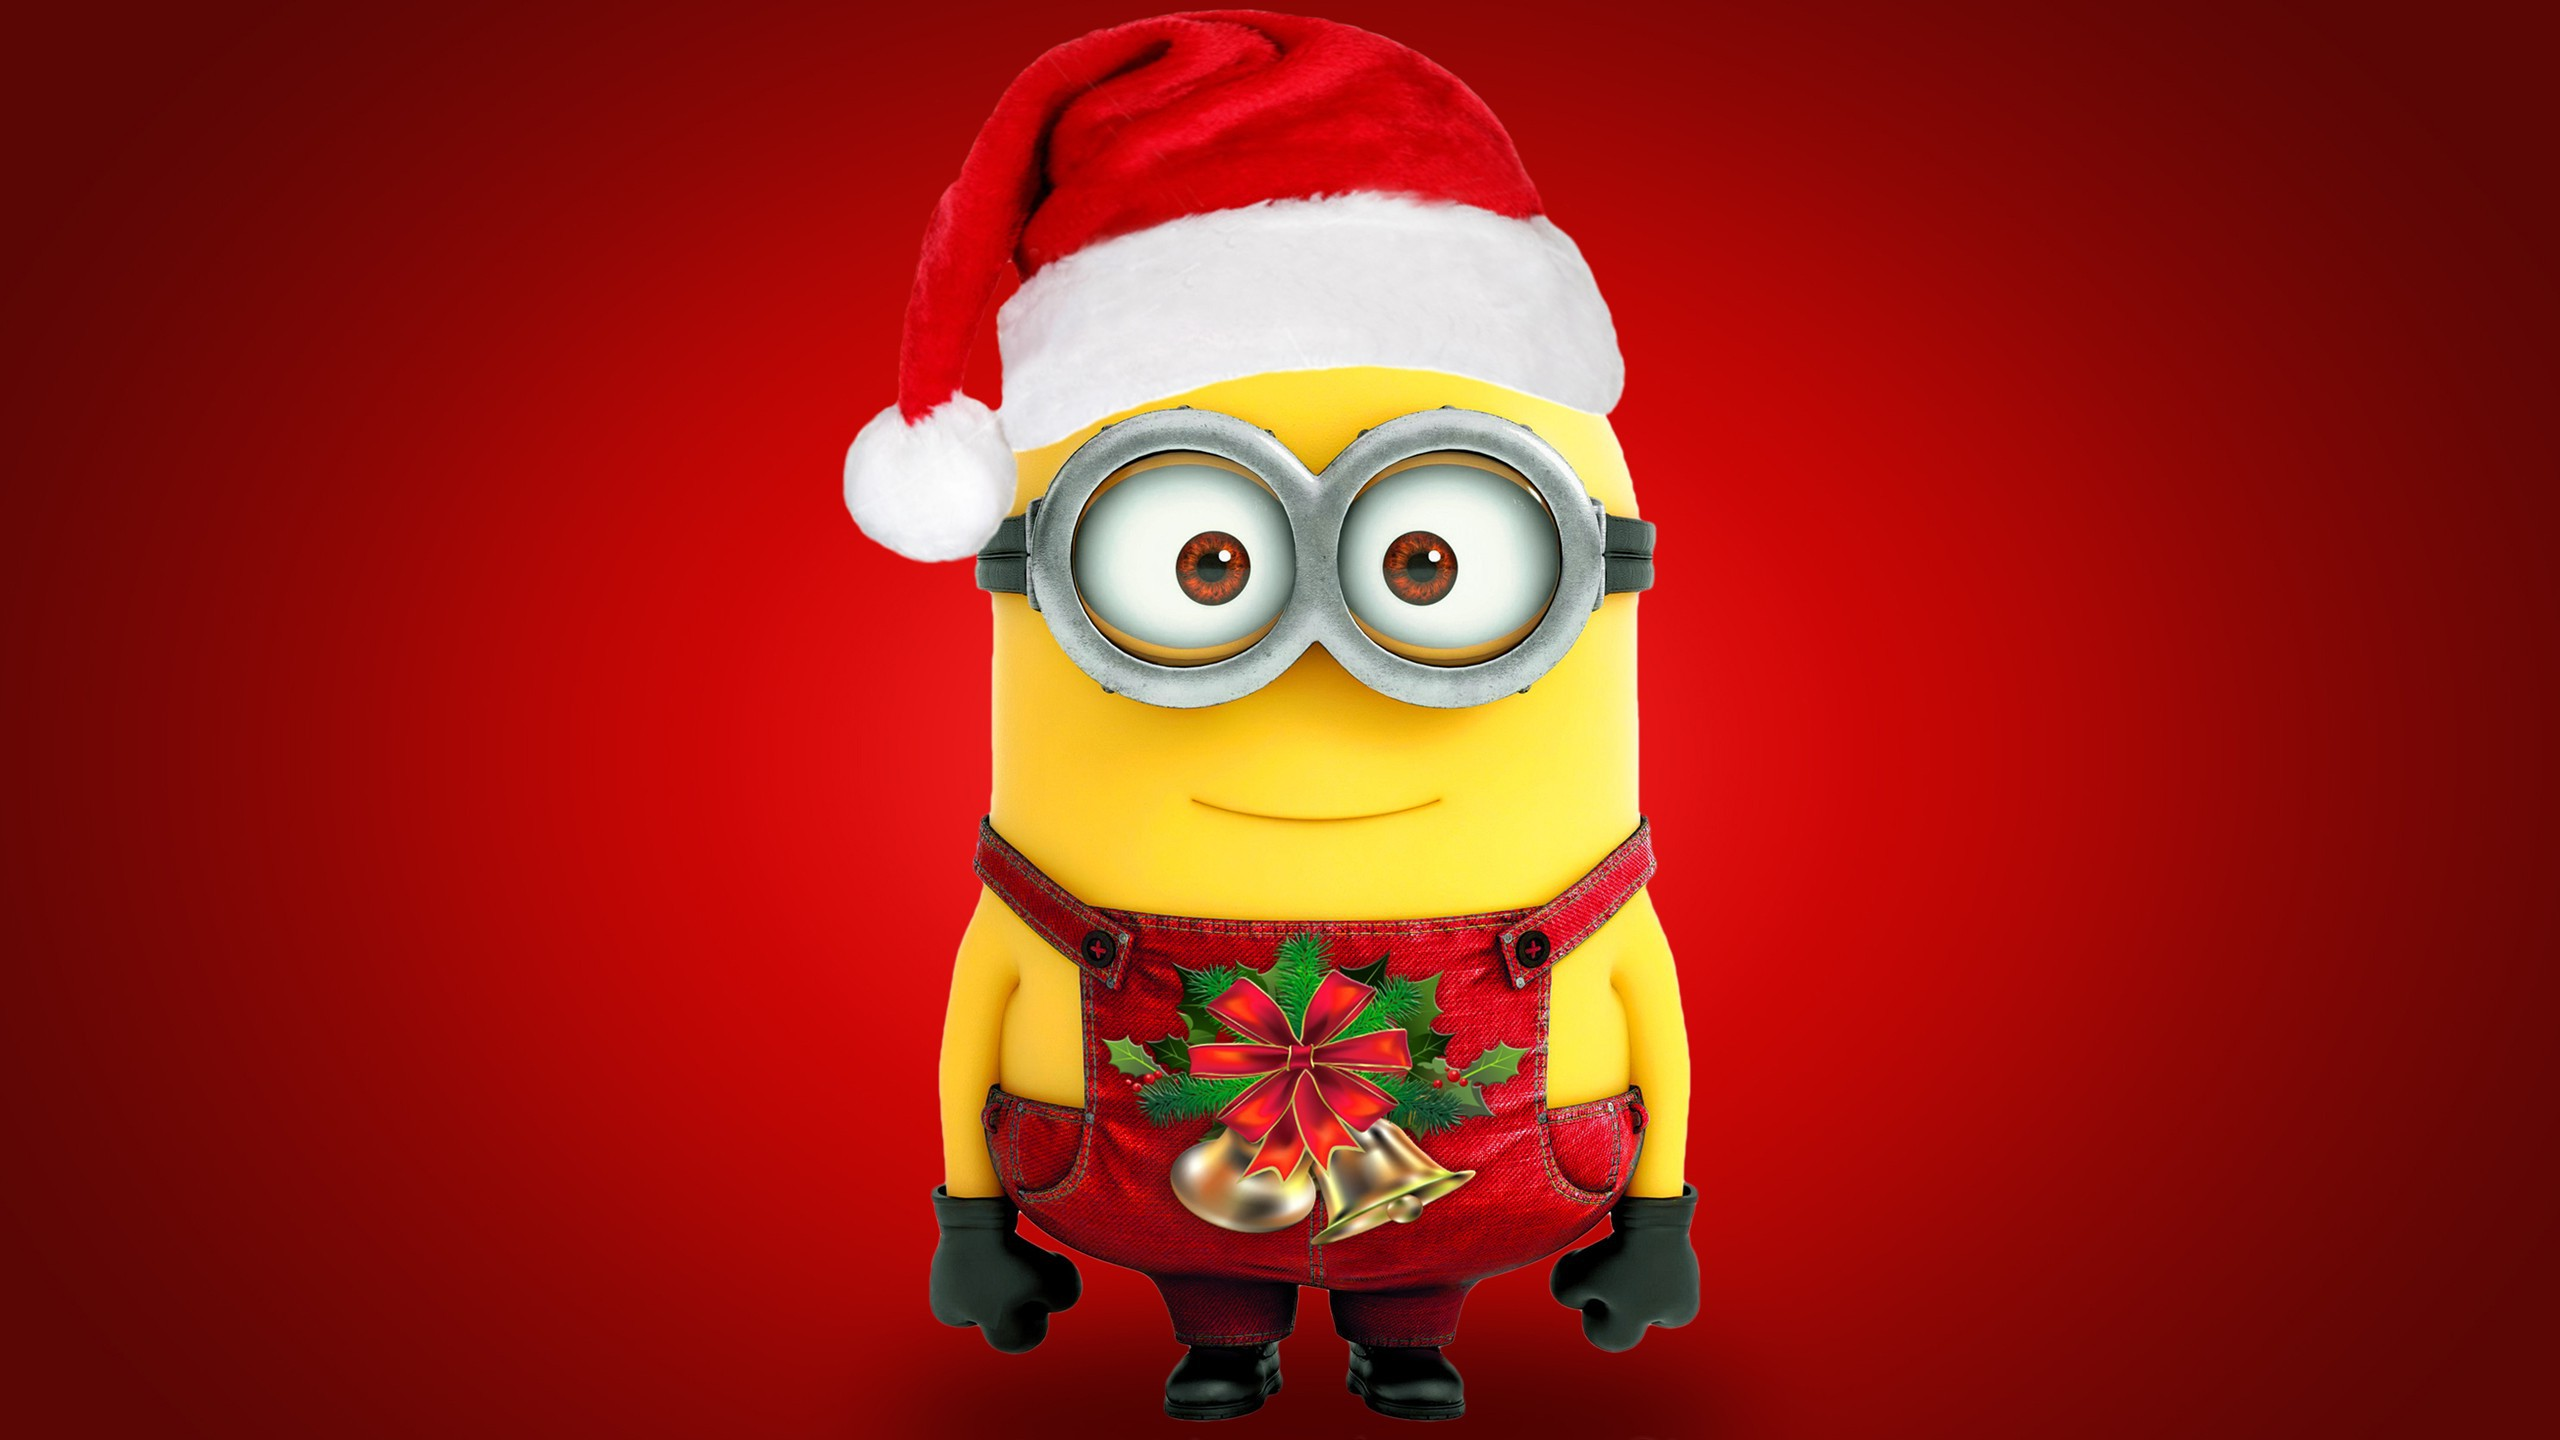 Minions Wallpapers HD